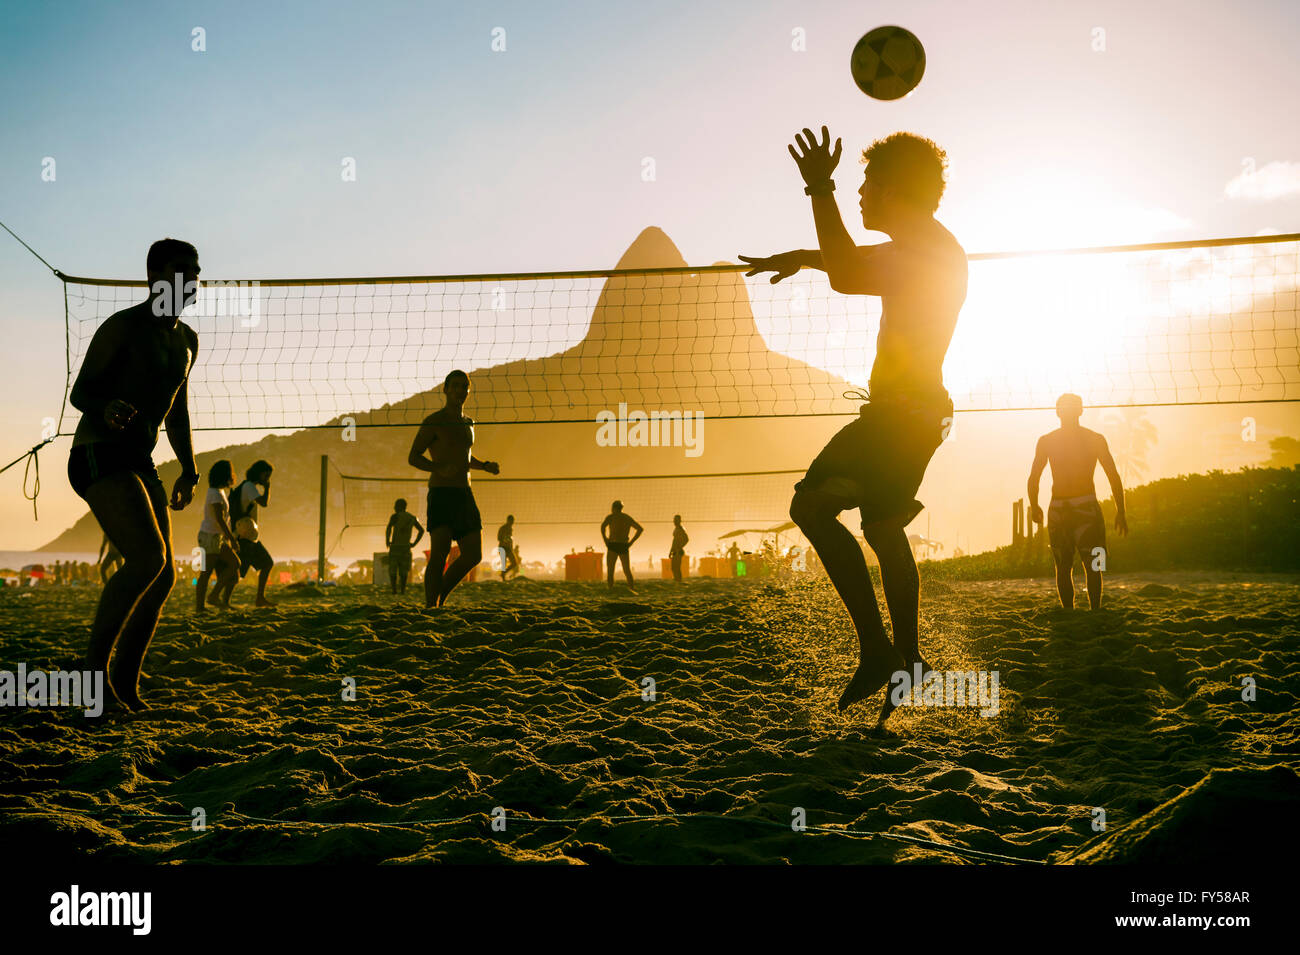 RIO DE JANEIRO - MARCH 27, 2016: Brazilians play beach futevolei (footvolley), combining football (soccer) and volleyball. - Stock Image